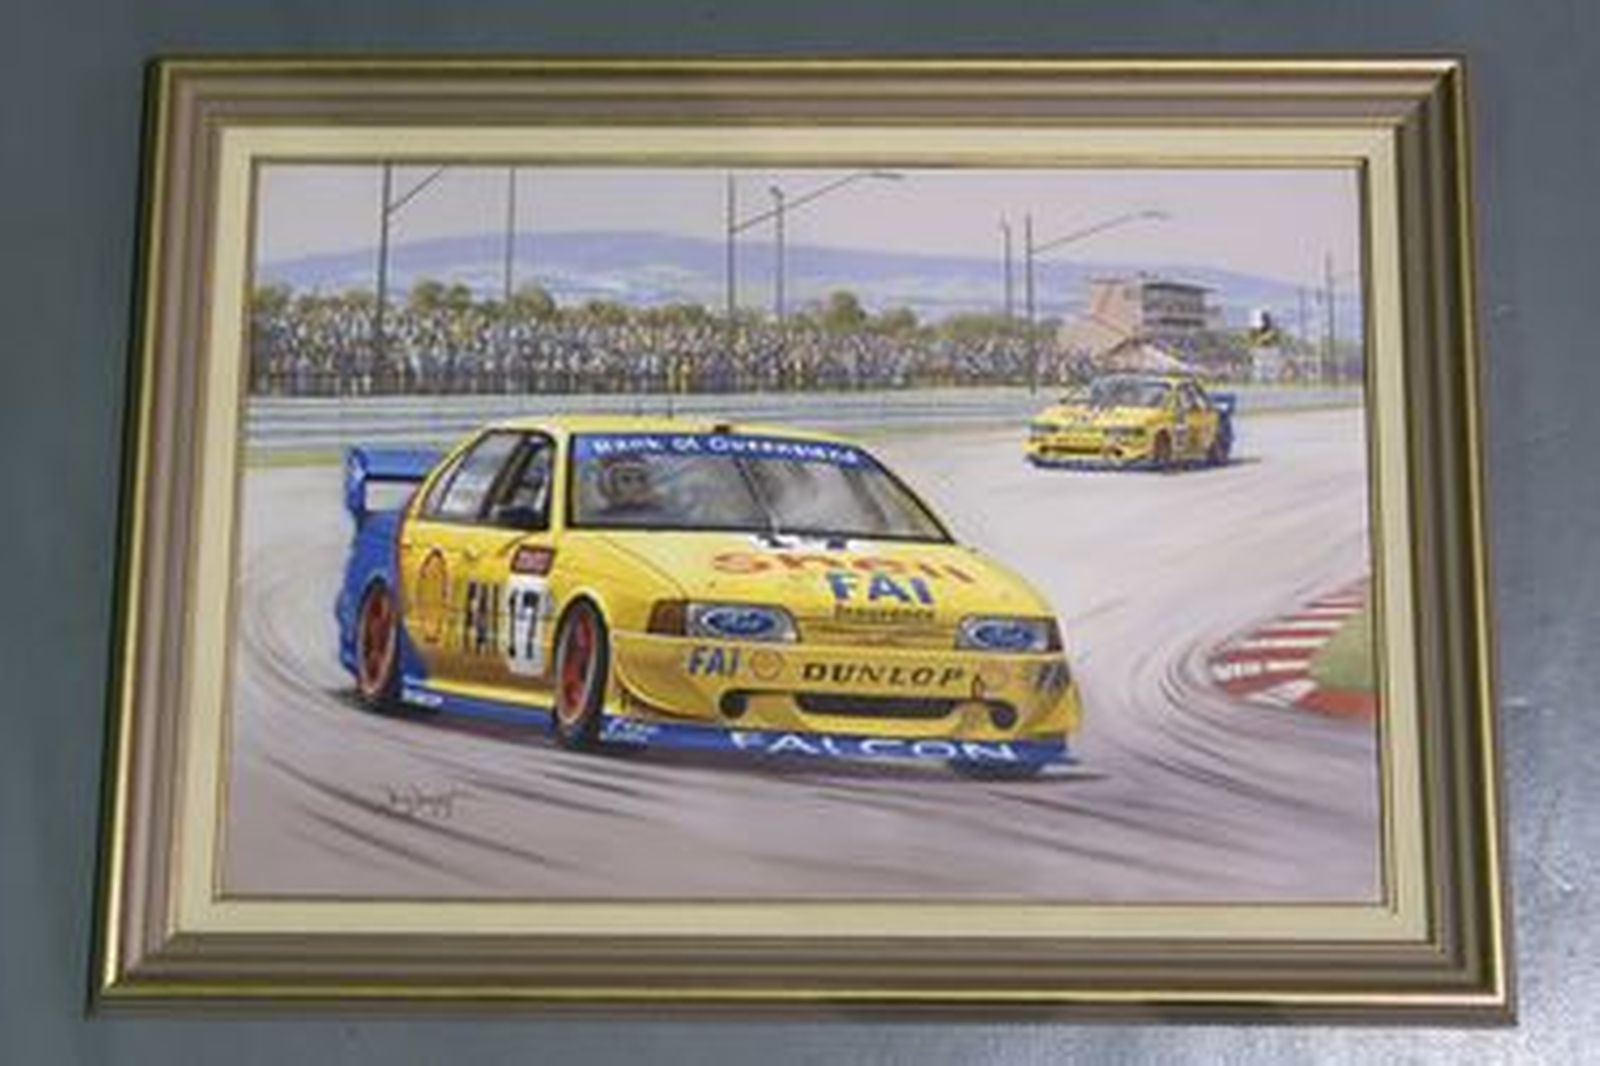 Framed Painting - 'Masters of the Mountain': Dick Johnson & John Bowe by Brian Baigant (110 x 80cm)